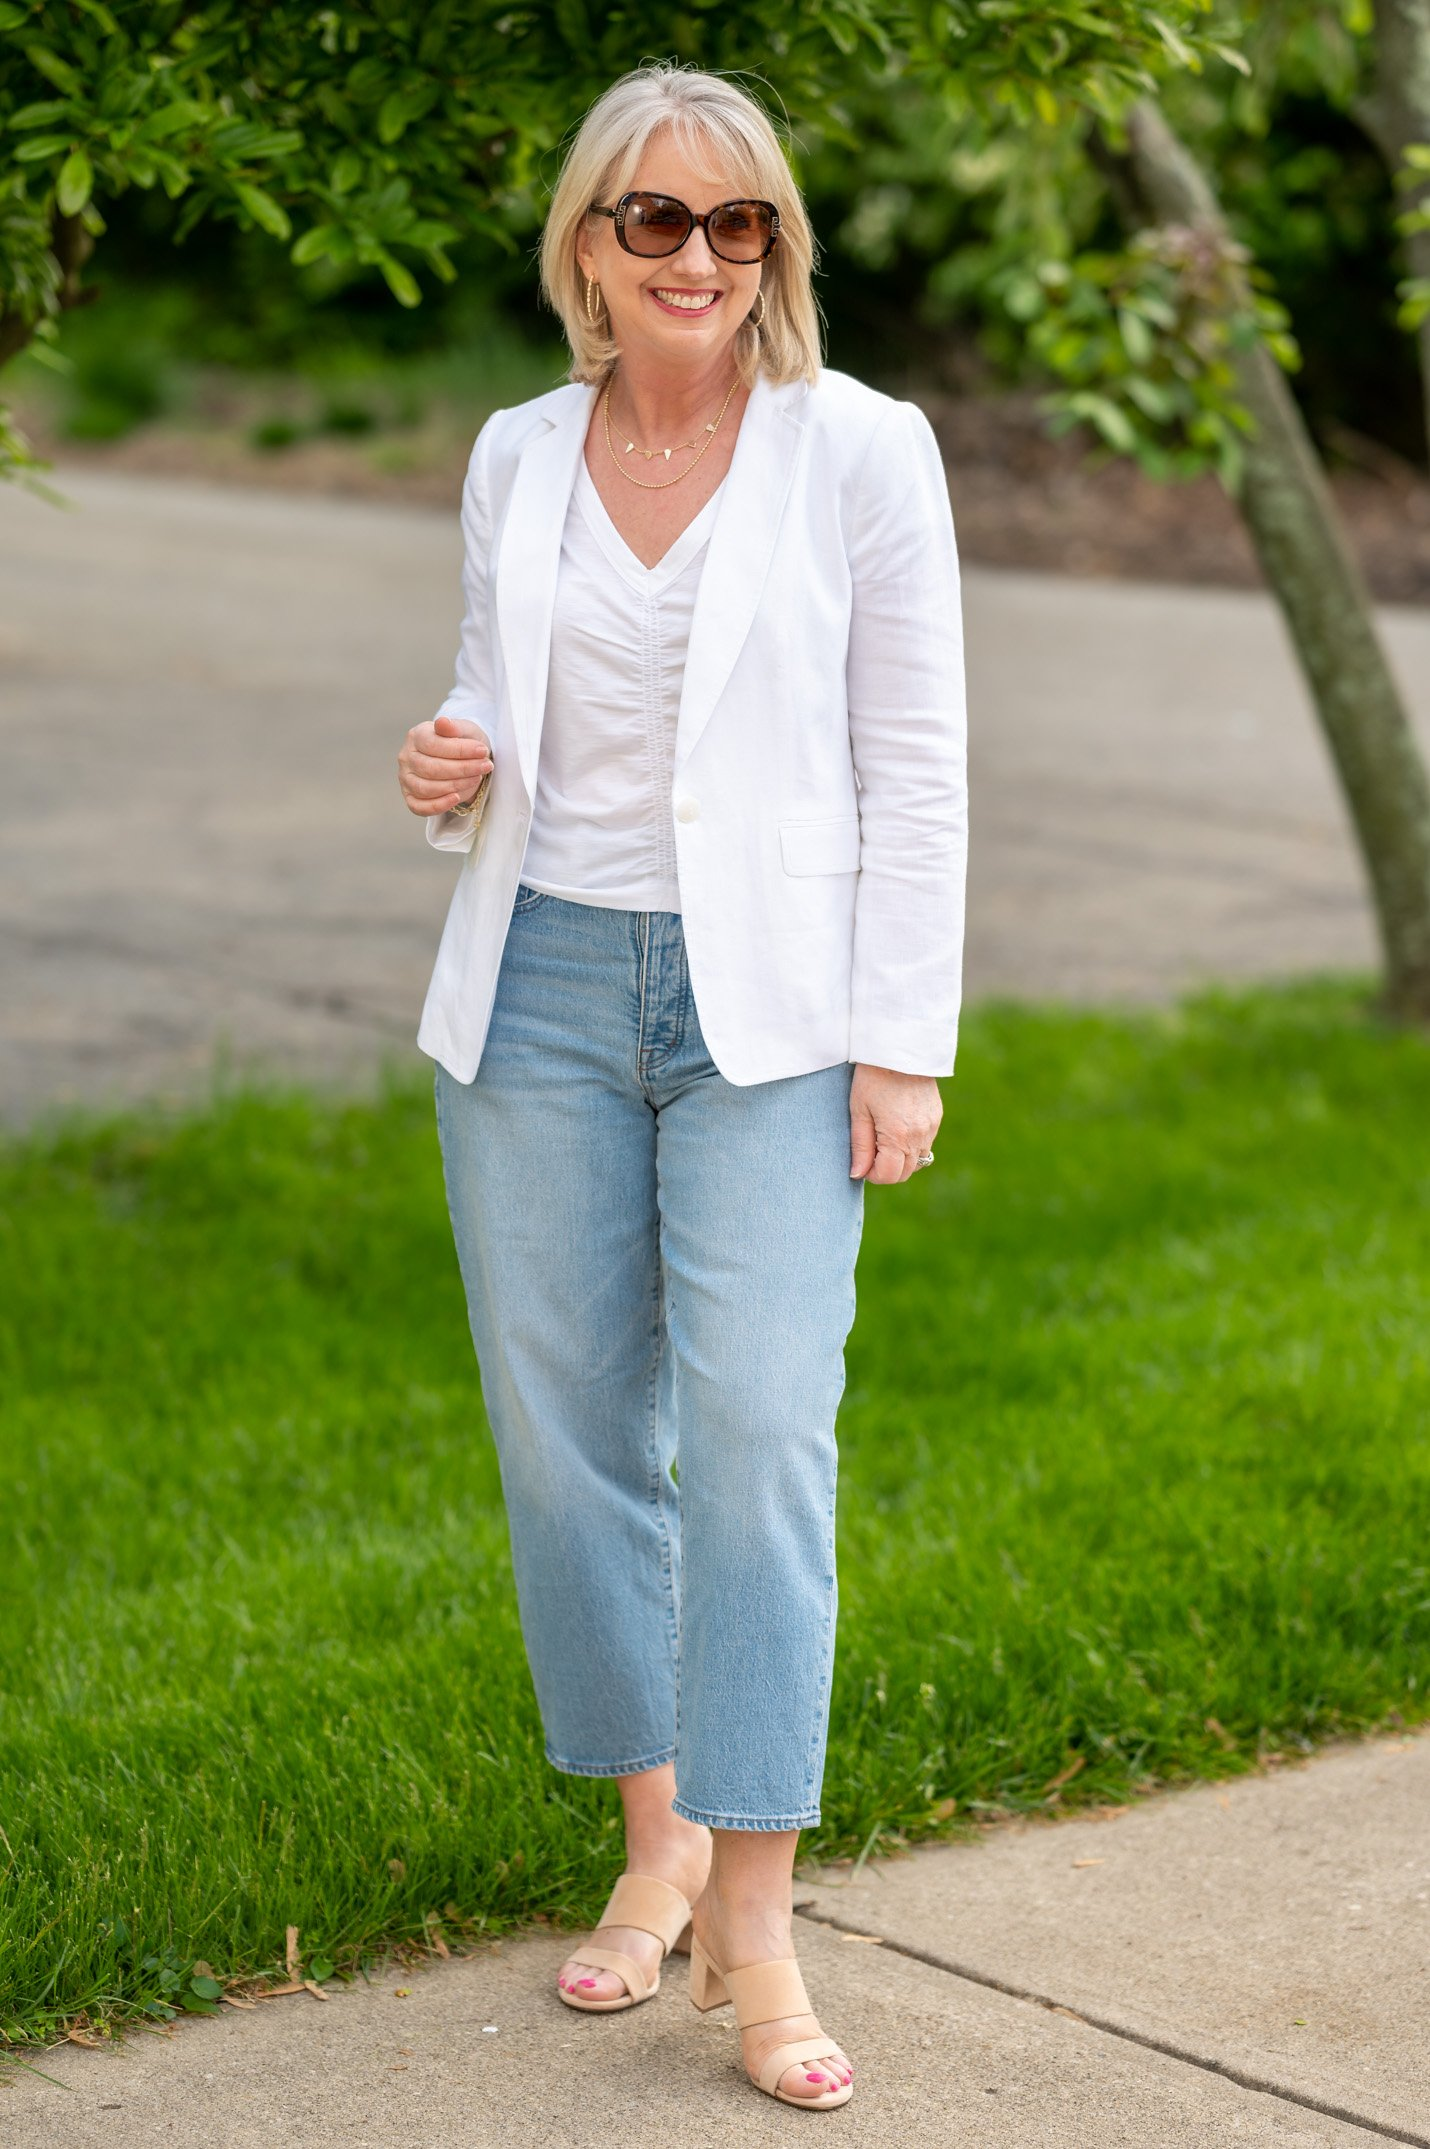 White Cinched Front Tee with Modern Jeans & White Blazer